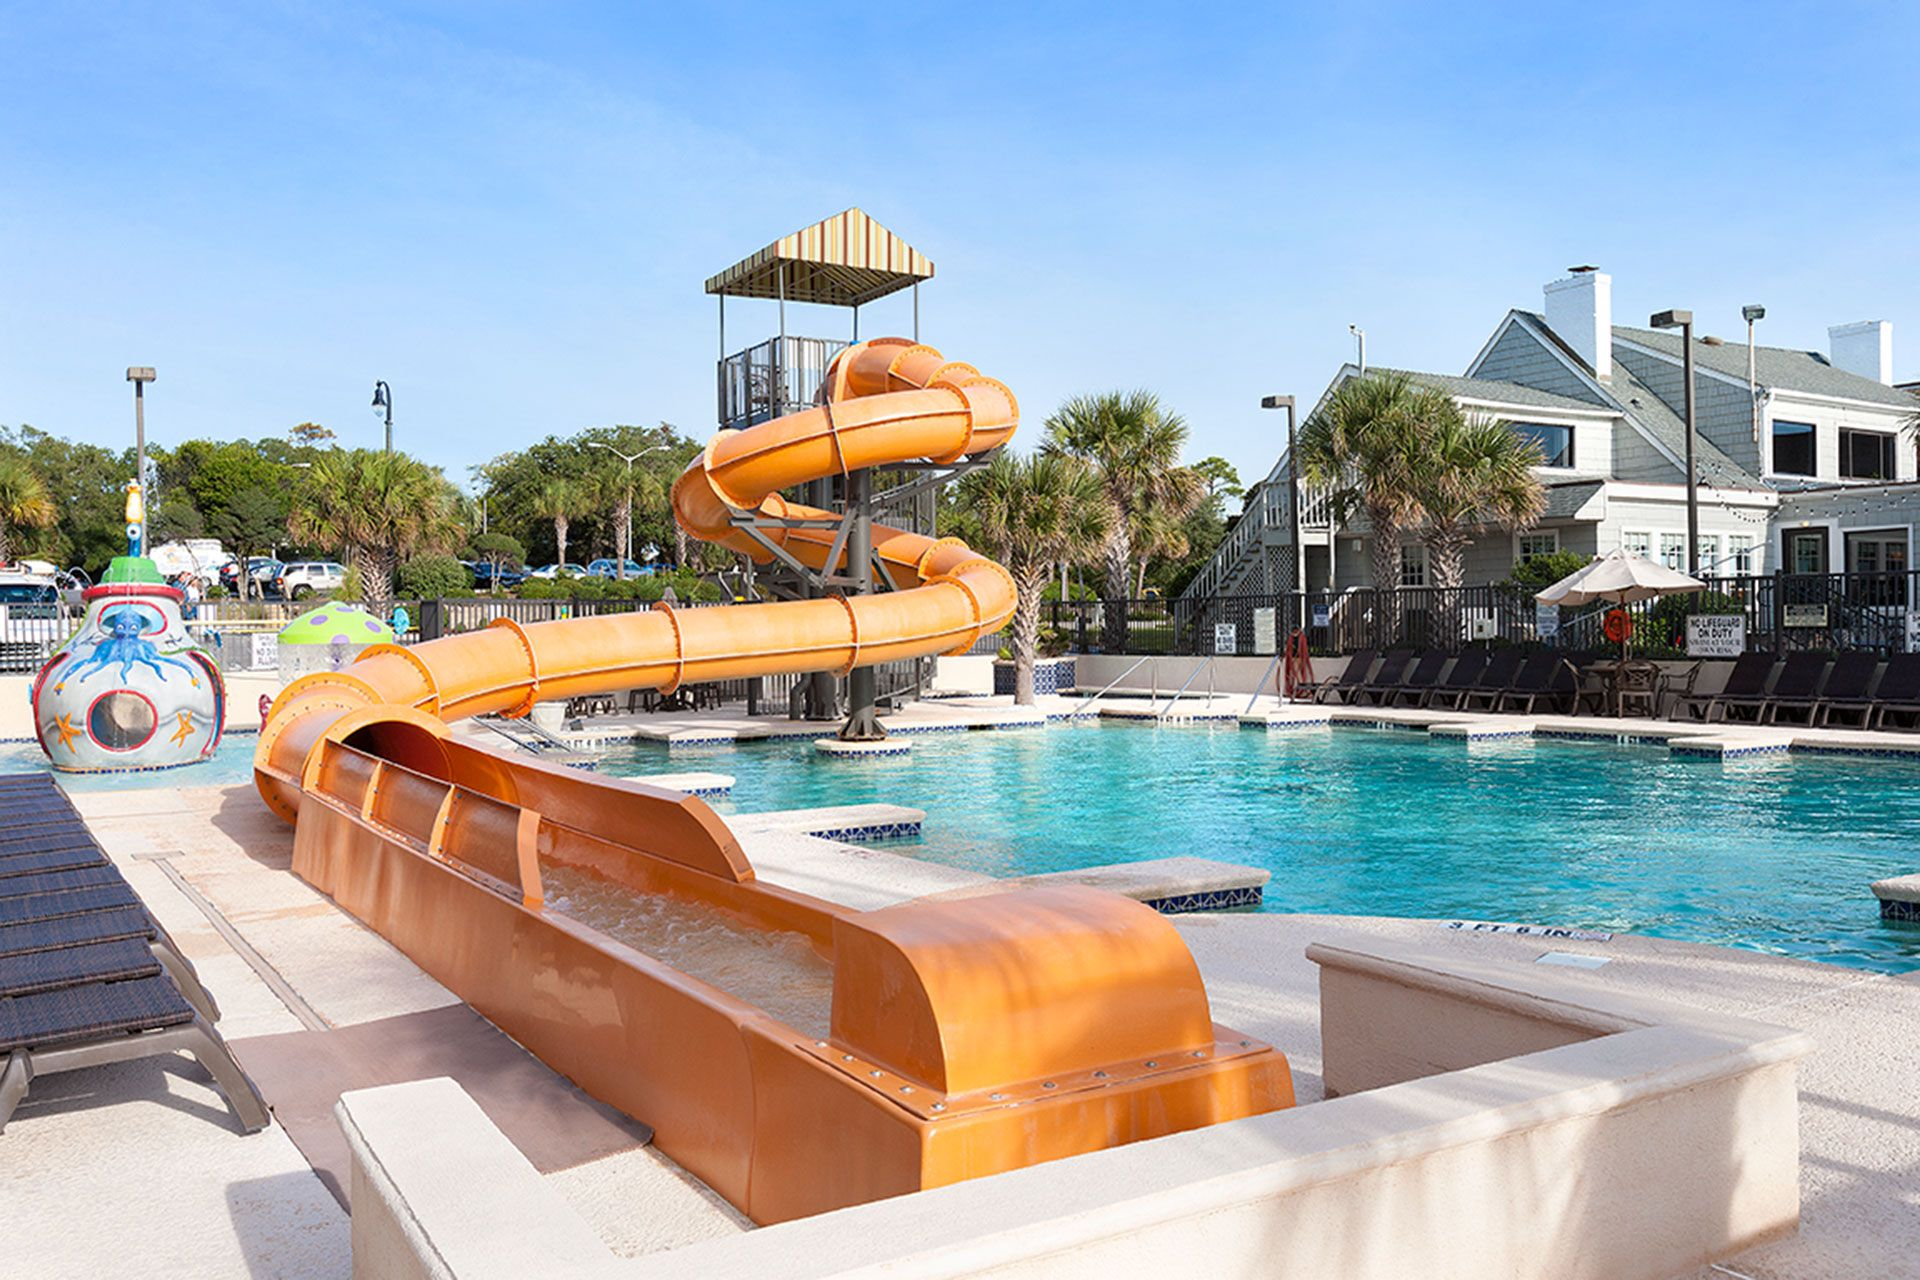 7 Best Hotels With Water Parks in Myrtle Beach 2019 (With